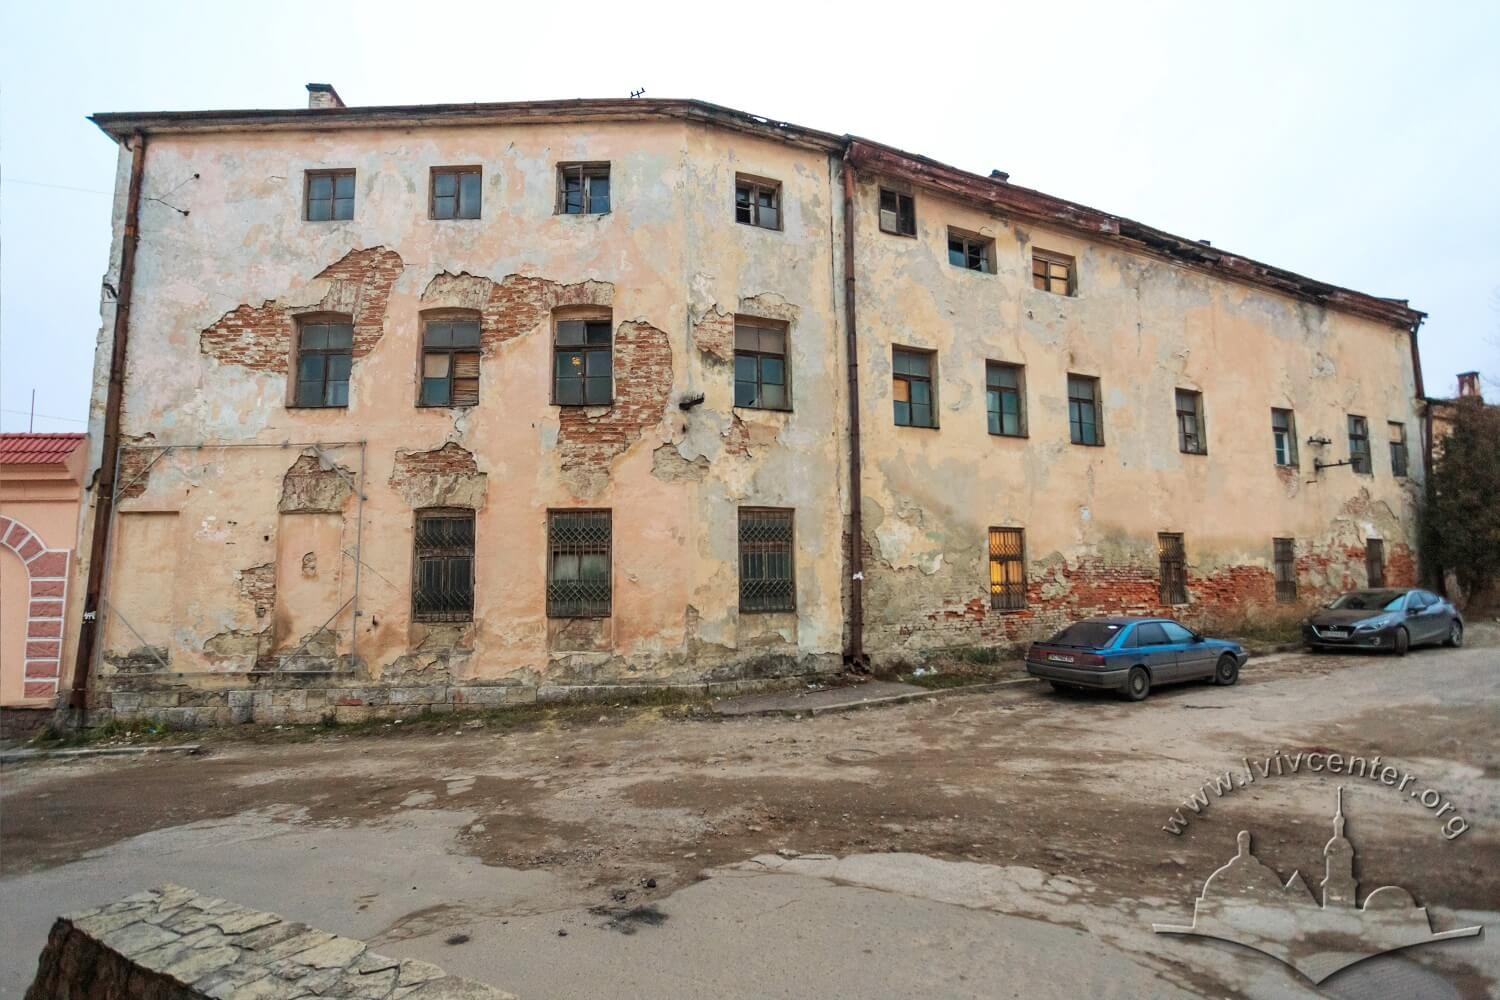 Vul. Khmelnytskoho, 114. One of the old plan't buildings on the right of the main gate/Photo courtesy of Nazarii Parkhomyk, 2015